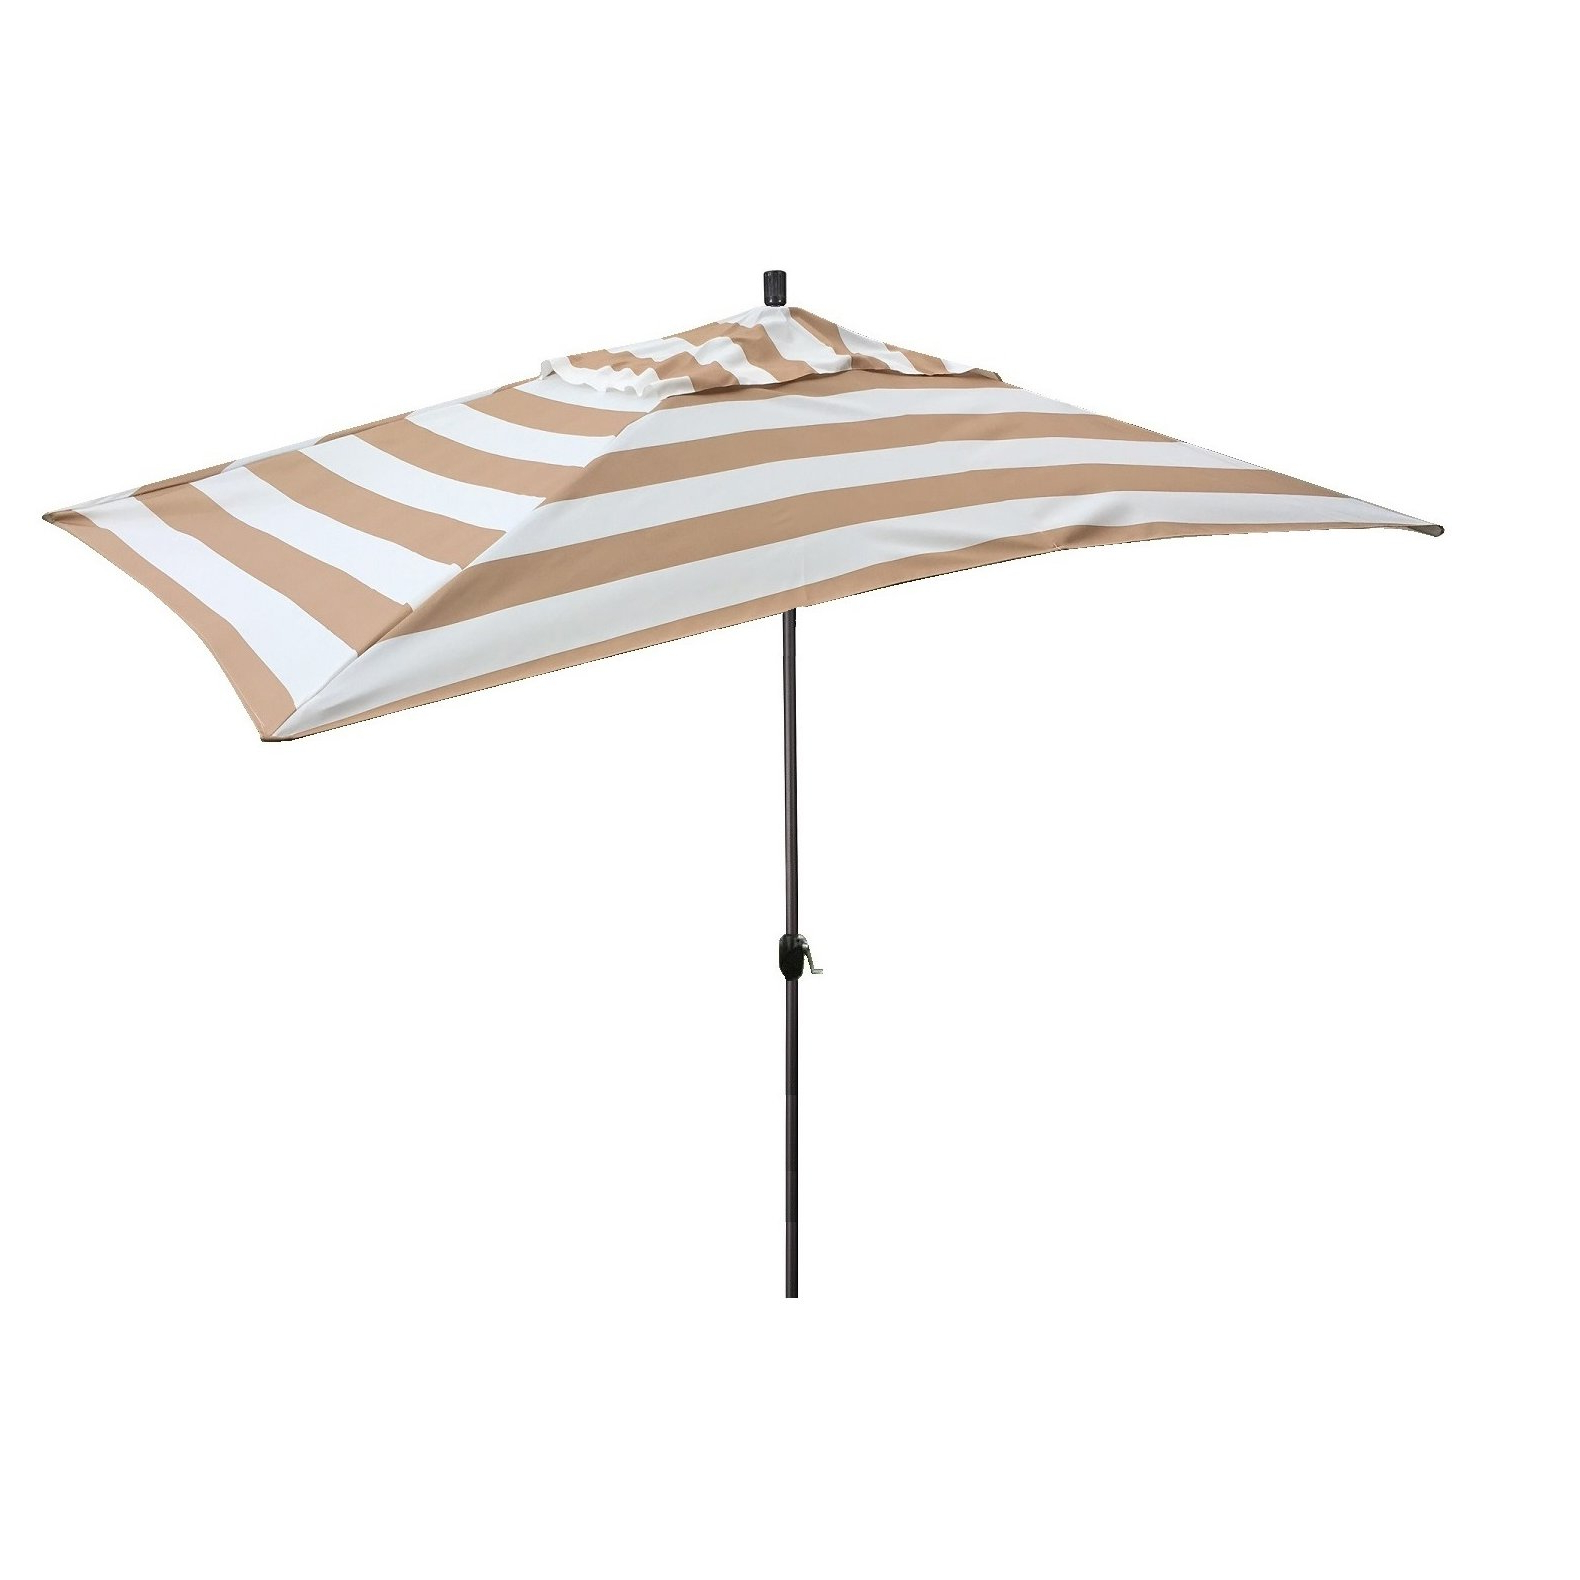 Norah Rectangular Market Umbrellas For 2020 Jalynn 10' X 6' Rectangular Market Umbrella (Gallery 10 of 20)